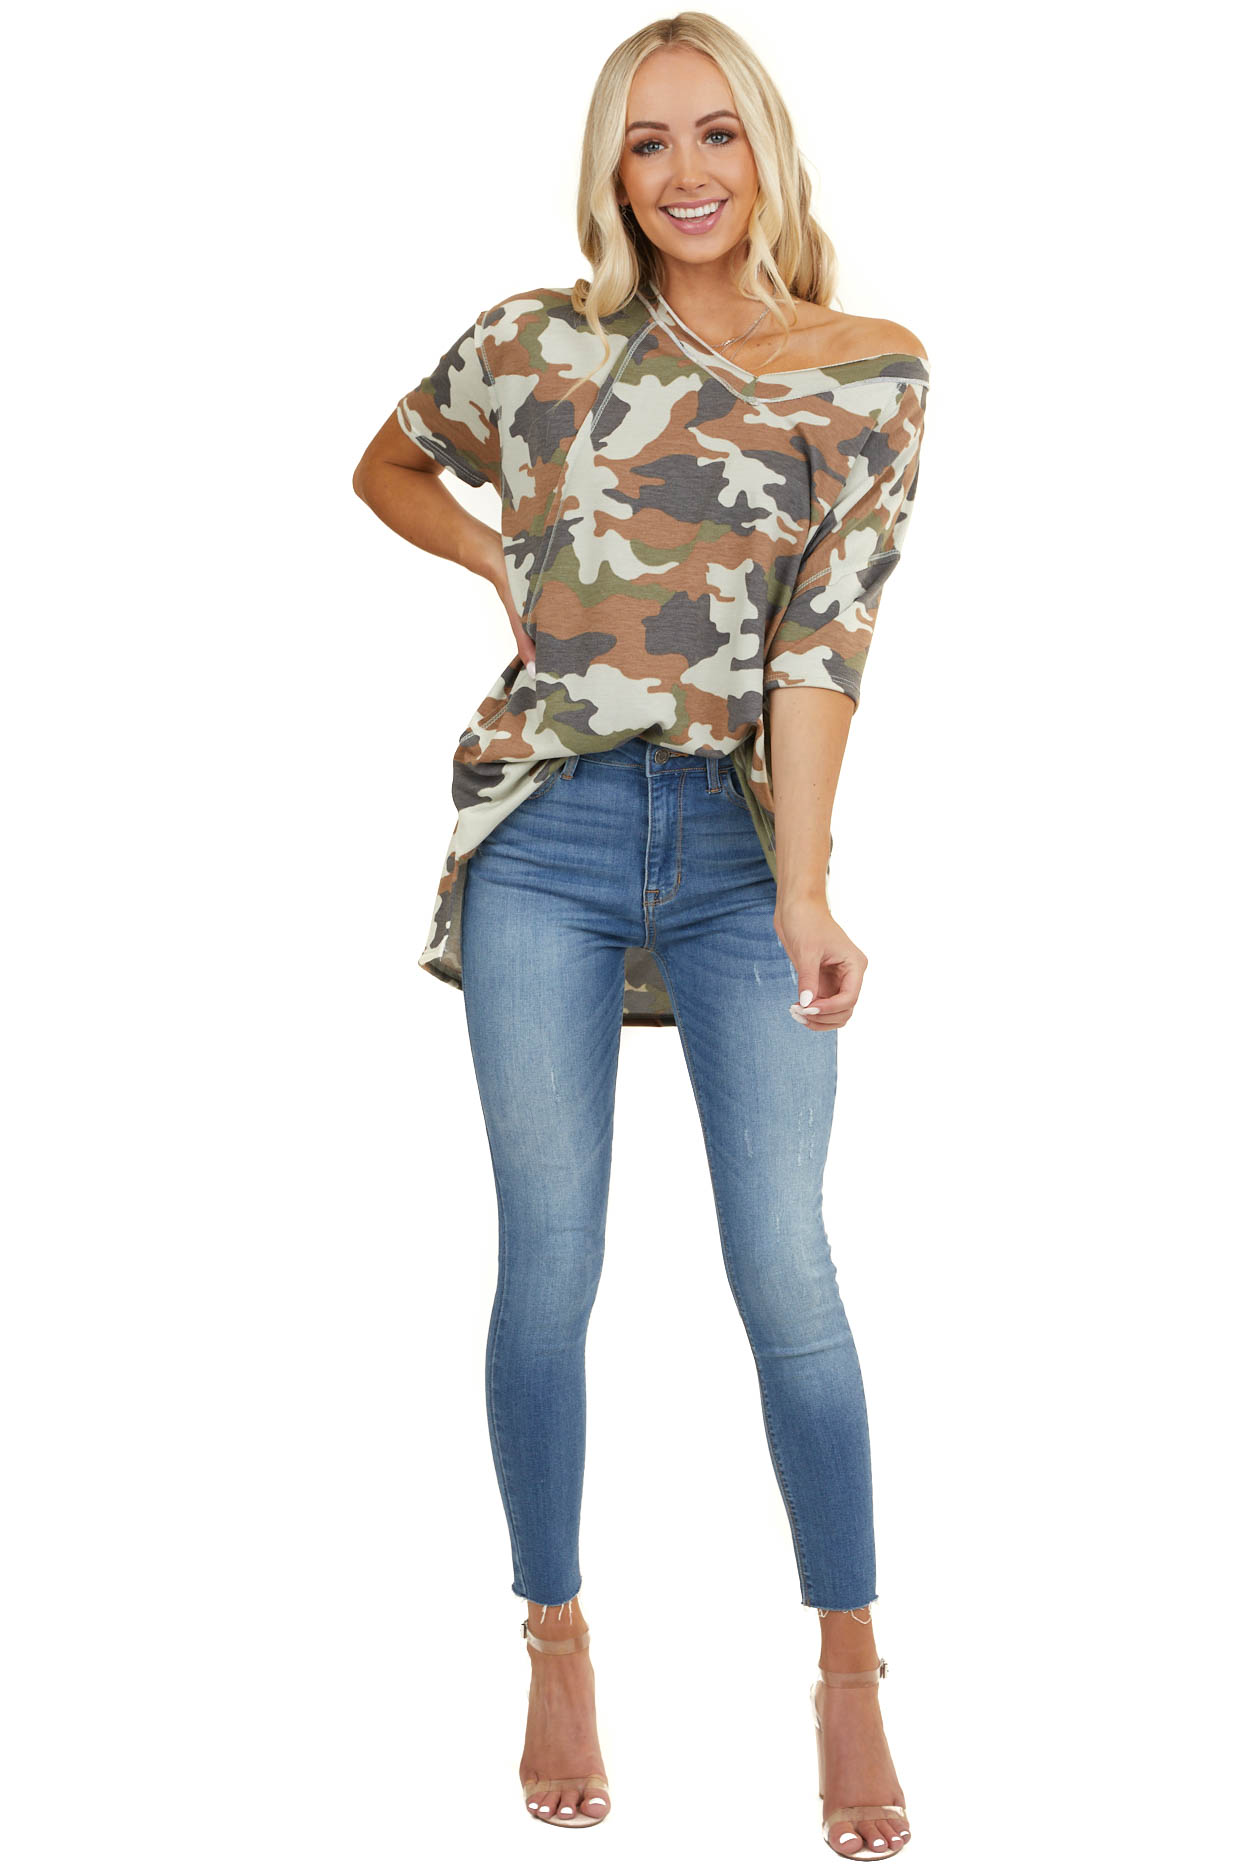 Olive and Cognac Camo Print V Neck Top with Short Sleeves